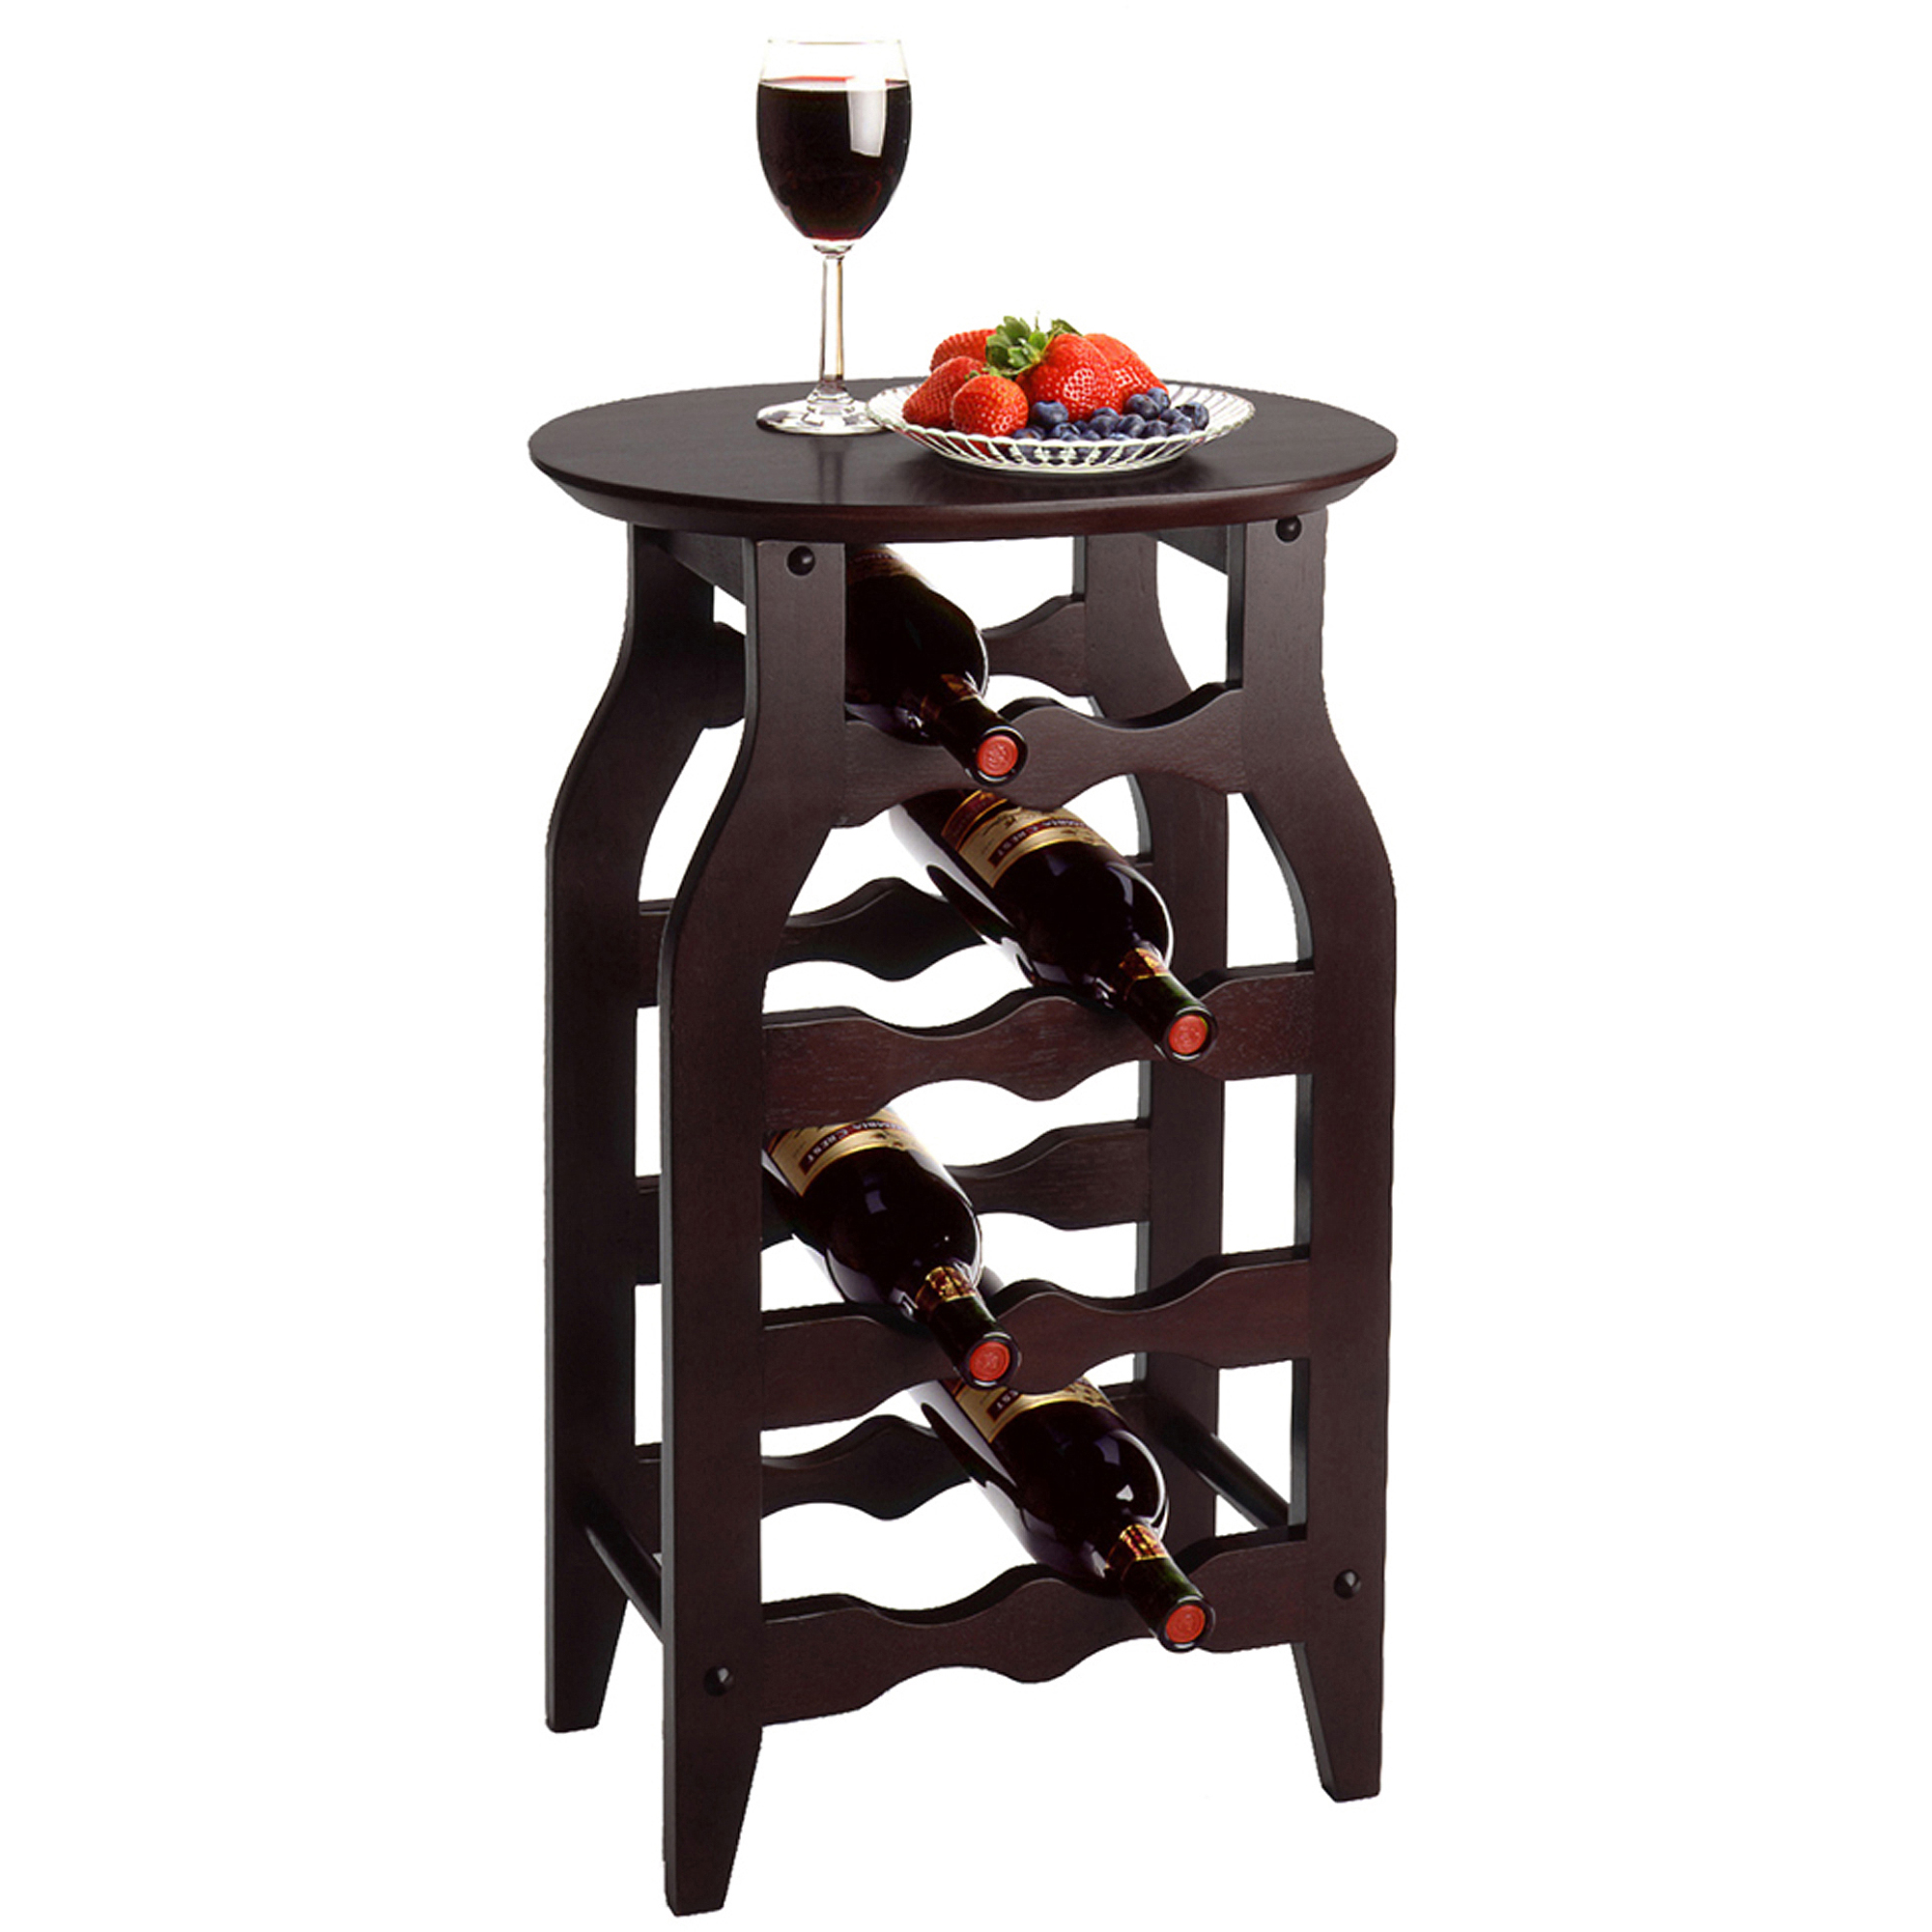 of jk your wine home bisita guam adams image for design diy rack project